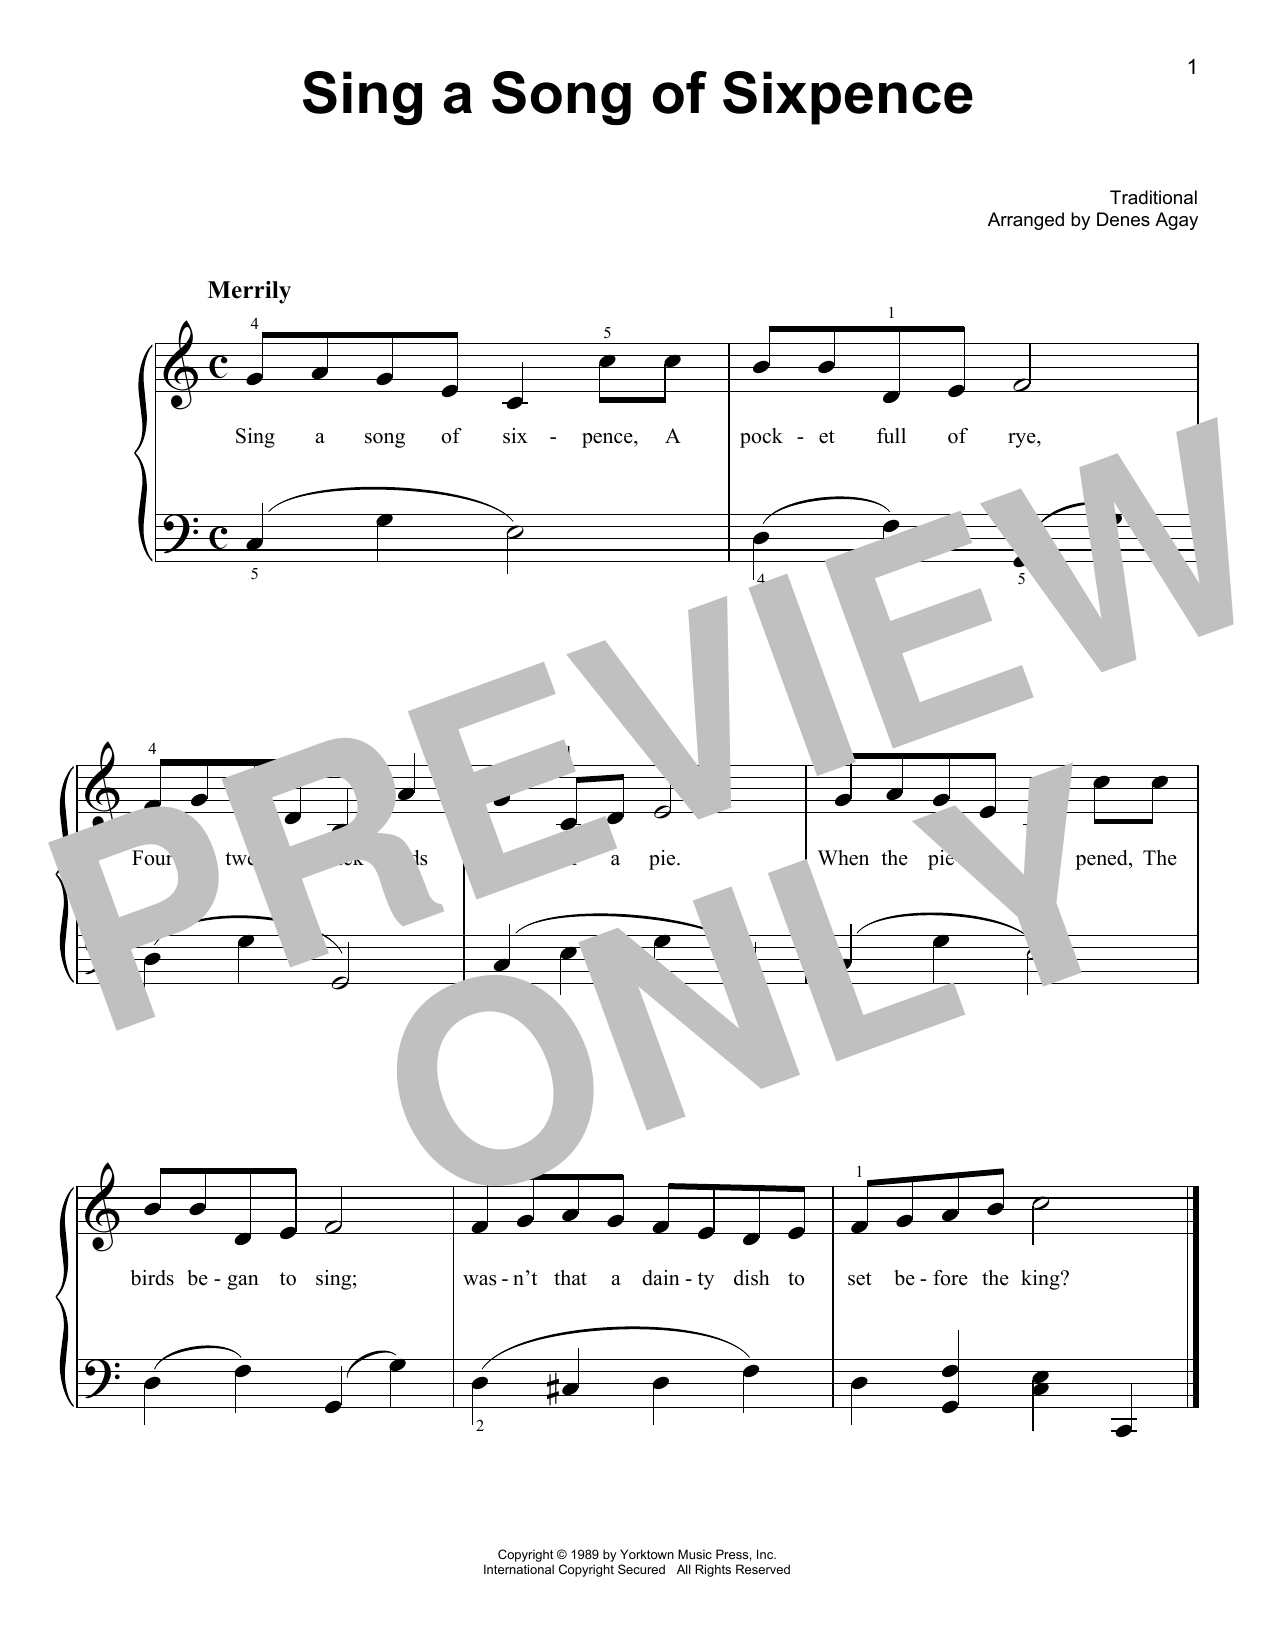 Sing A Song Of Sixpence (arr. Denes Agay) (Easy Piano)